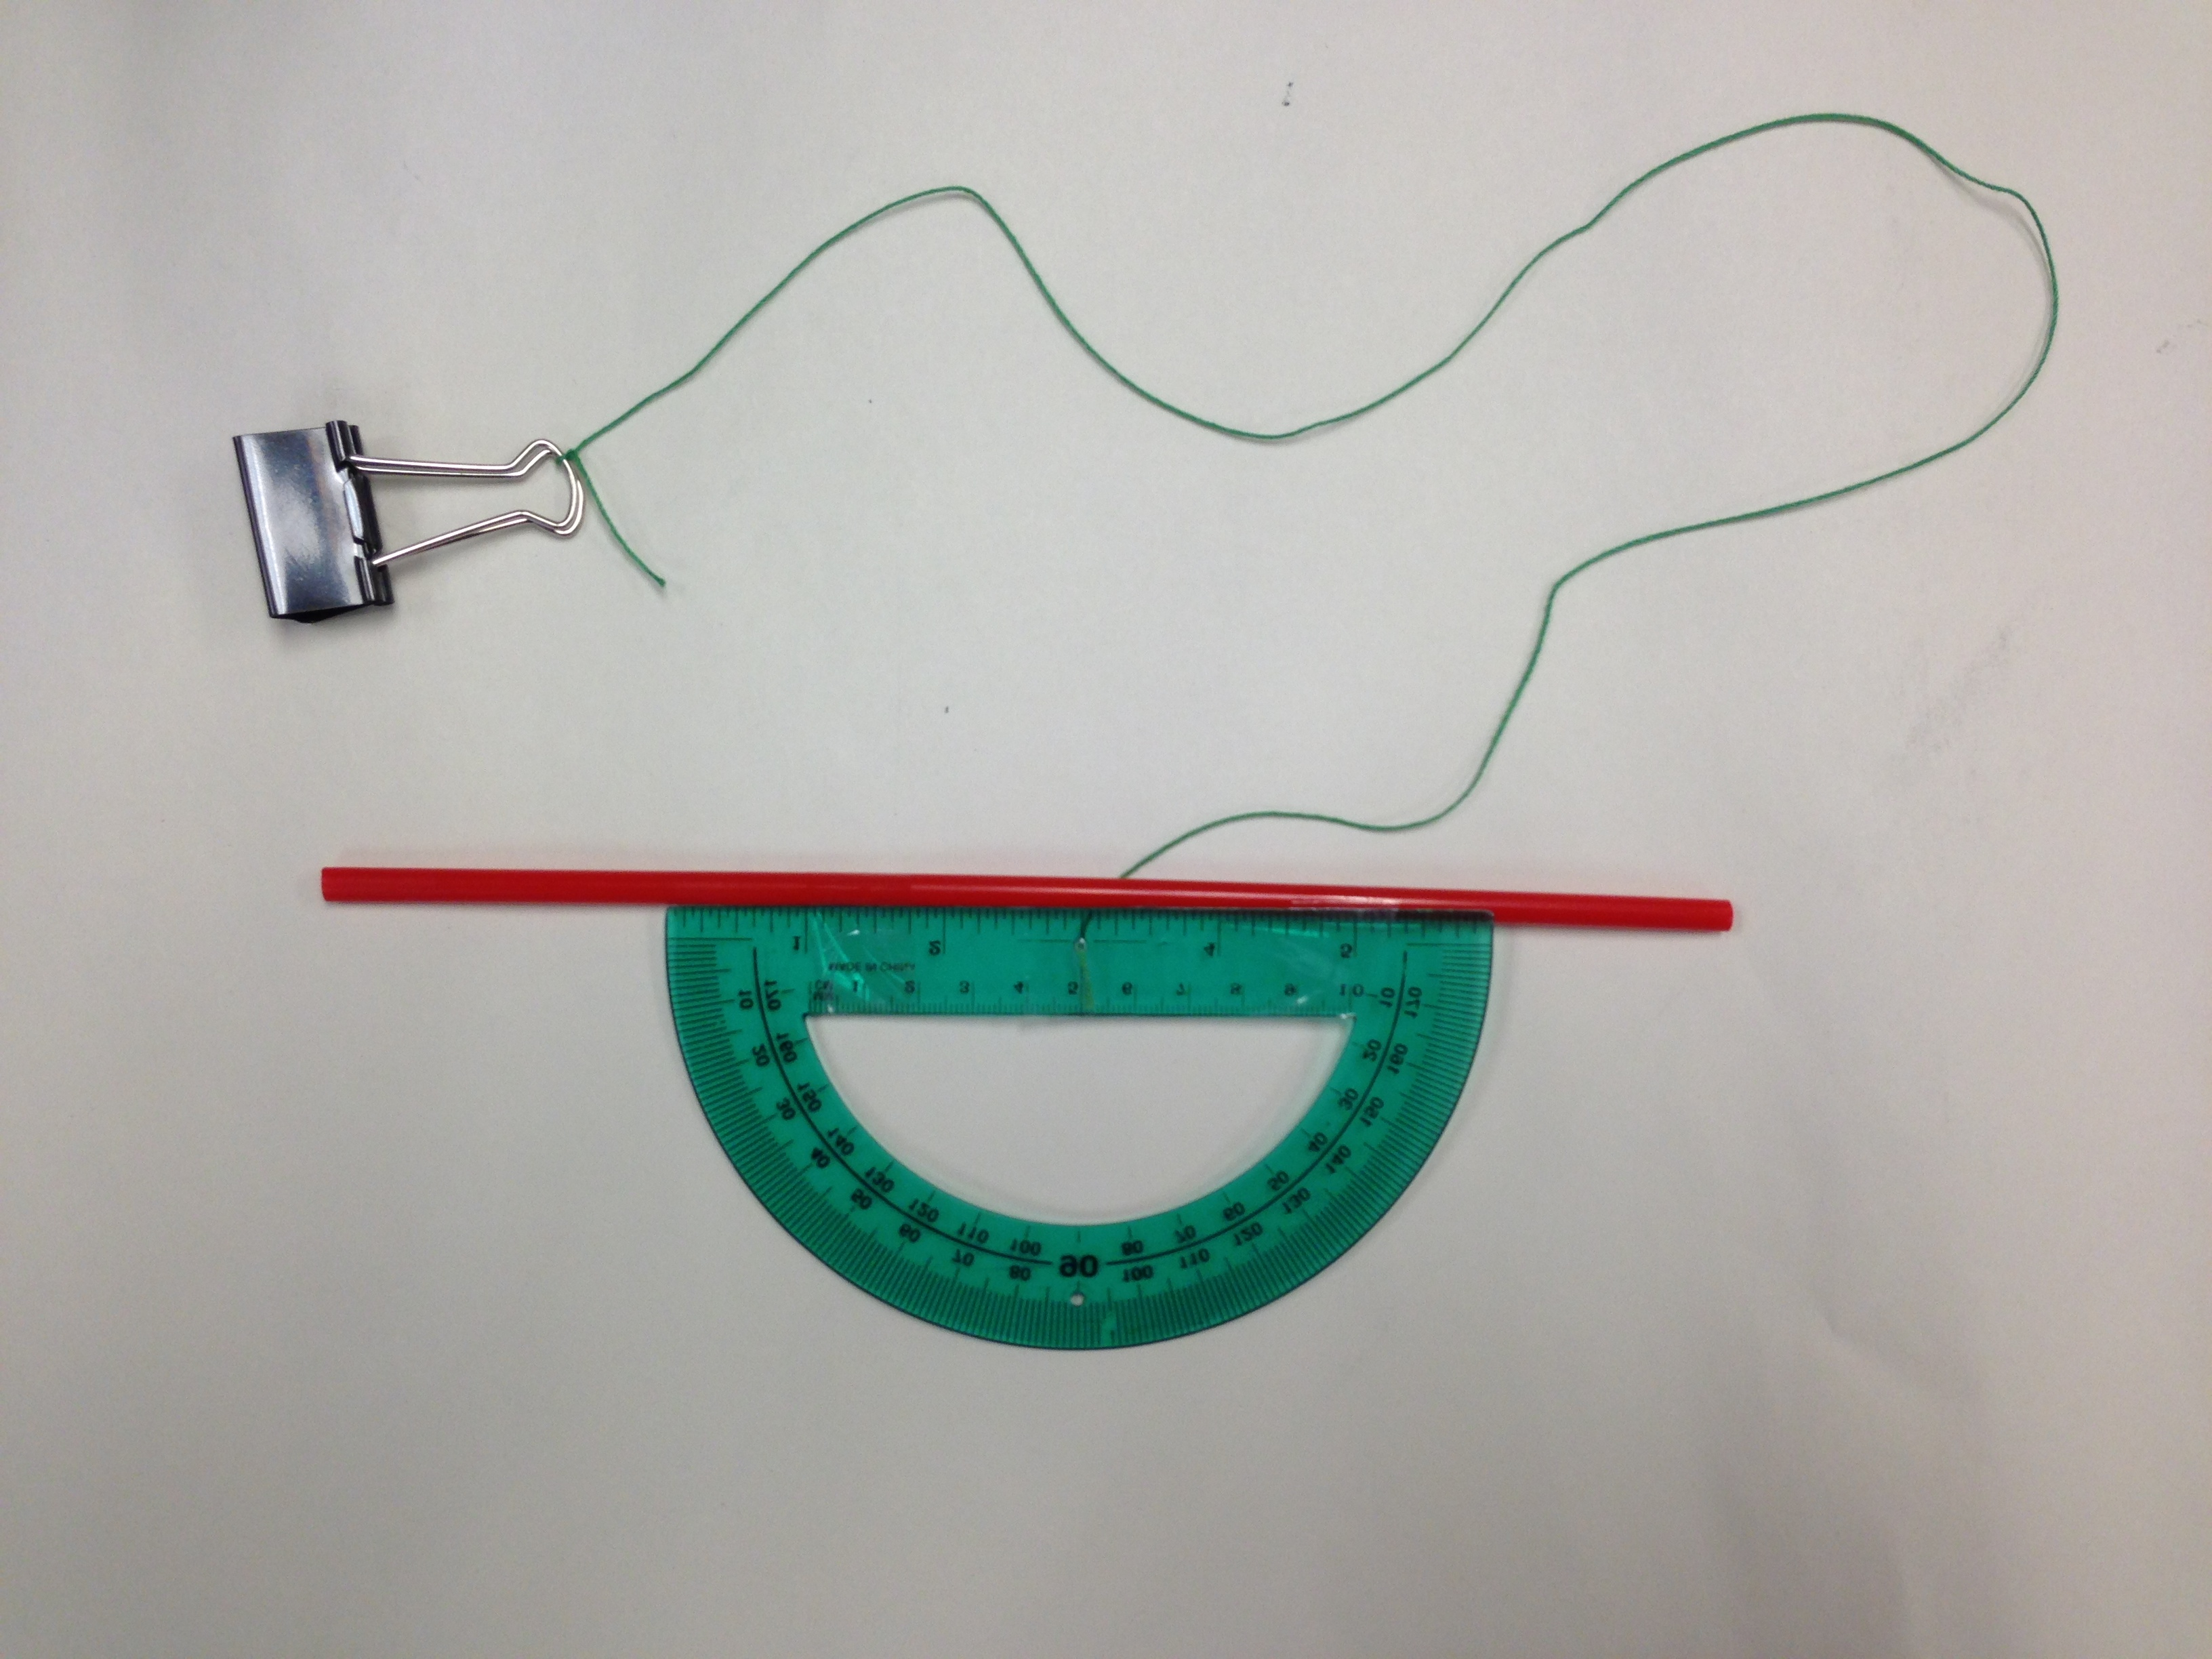 How to Make a Clinometer photo